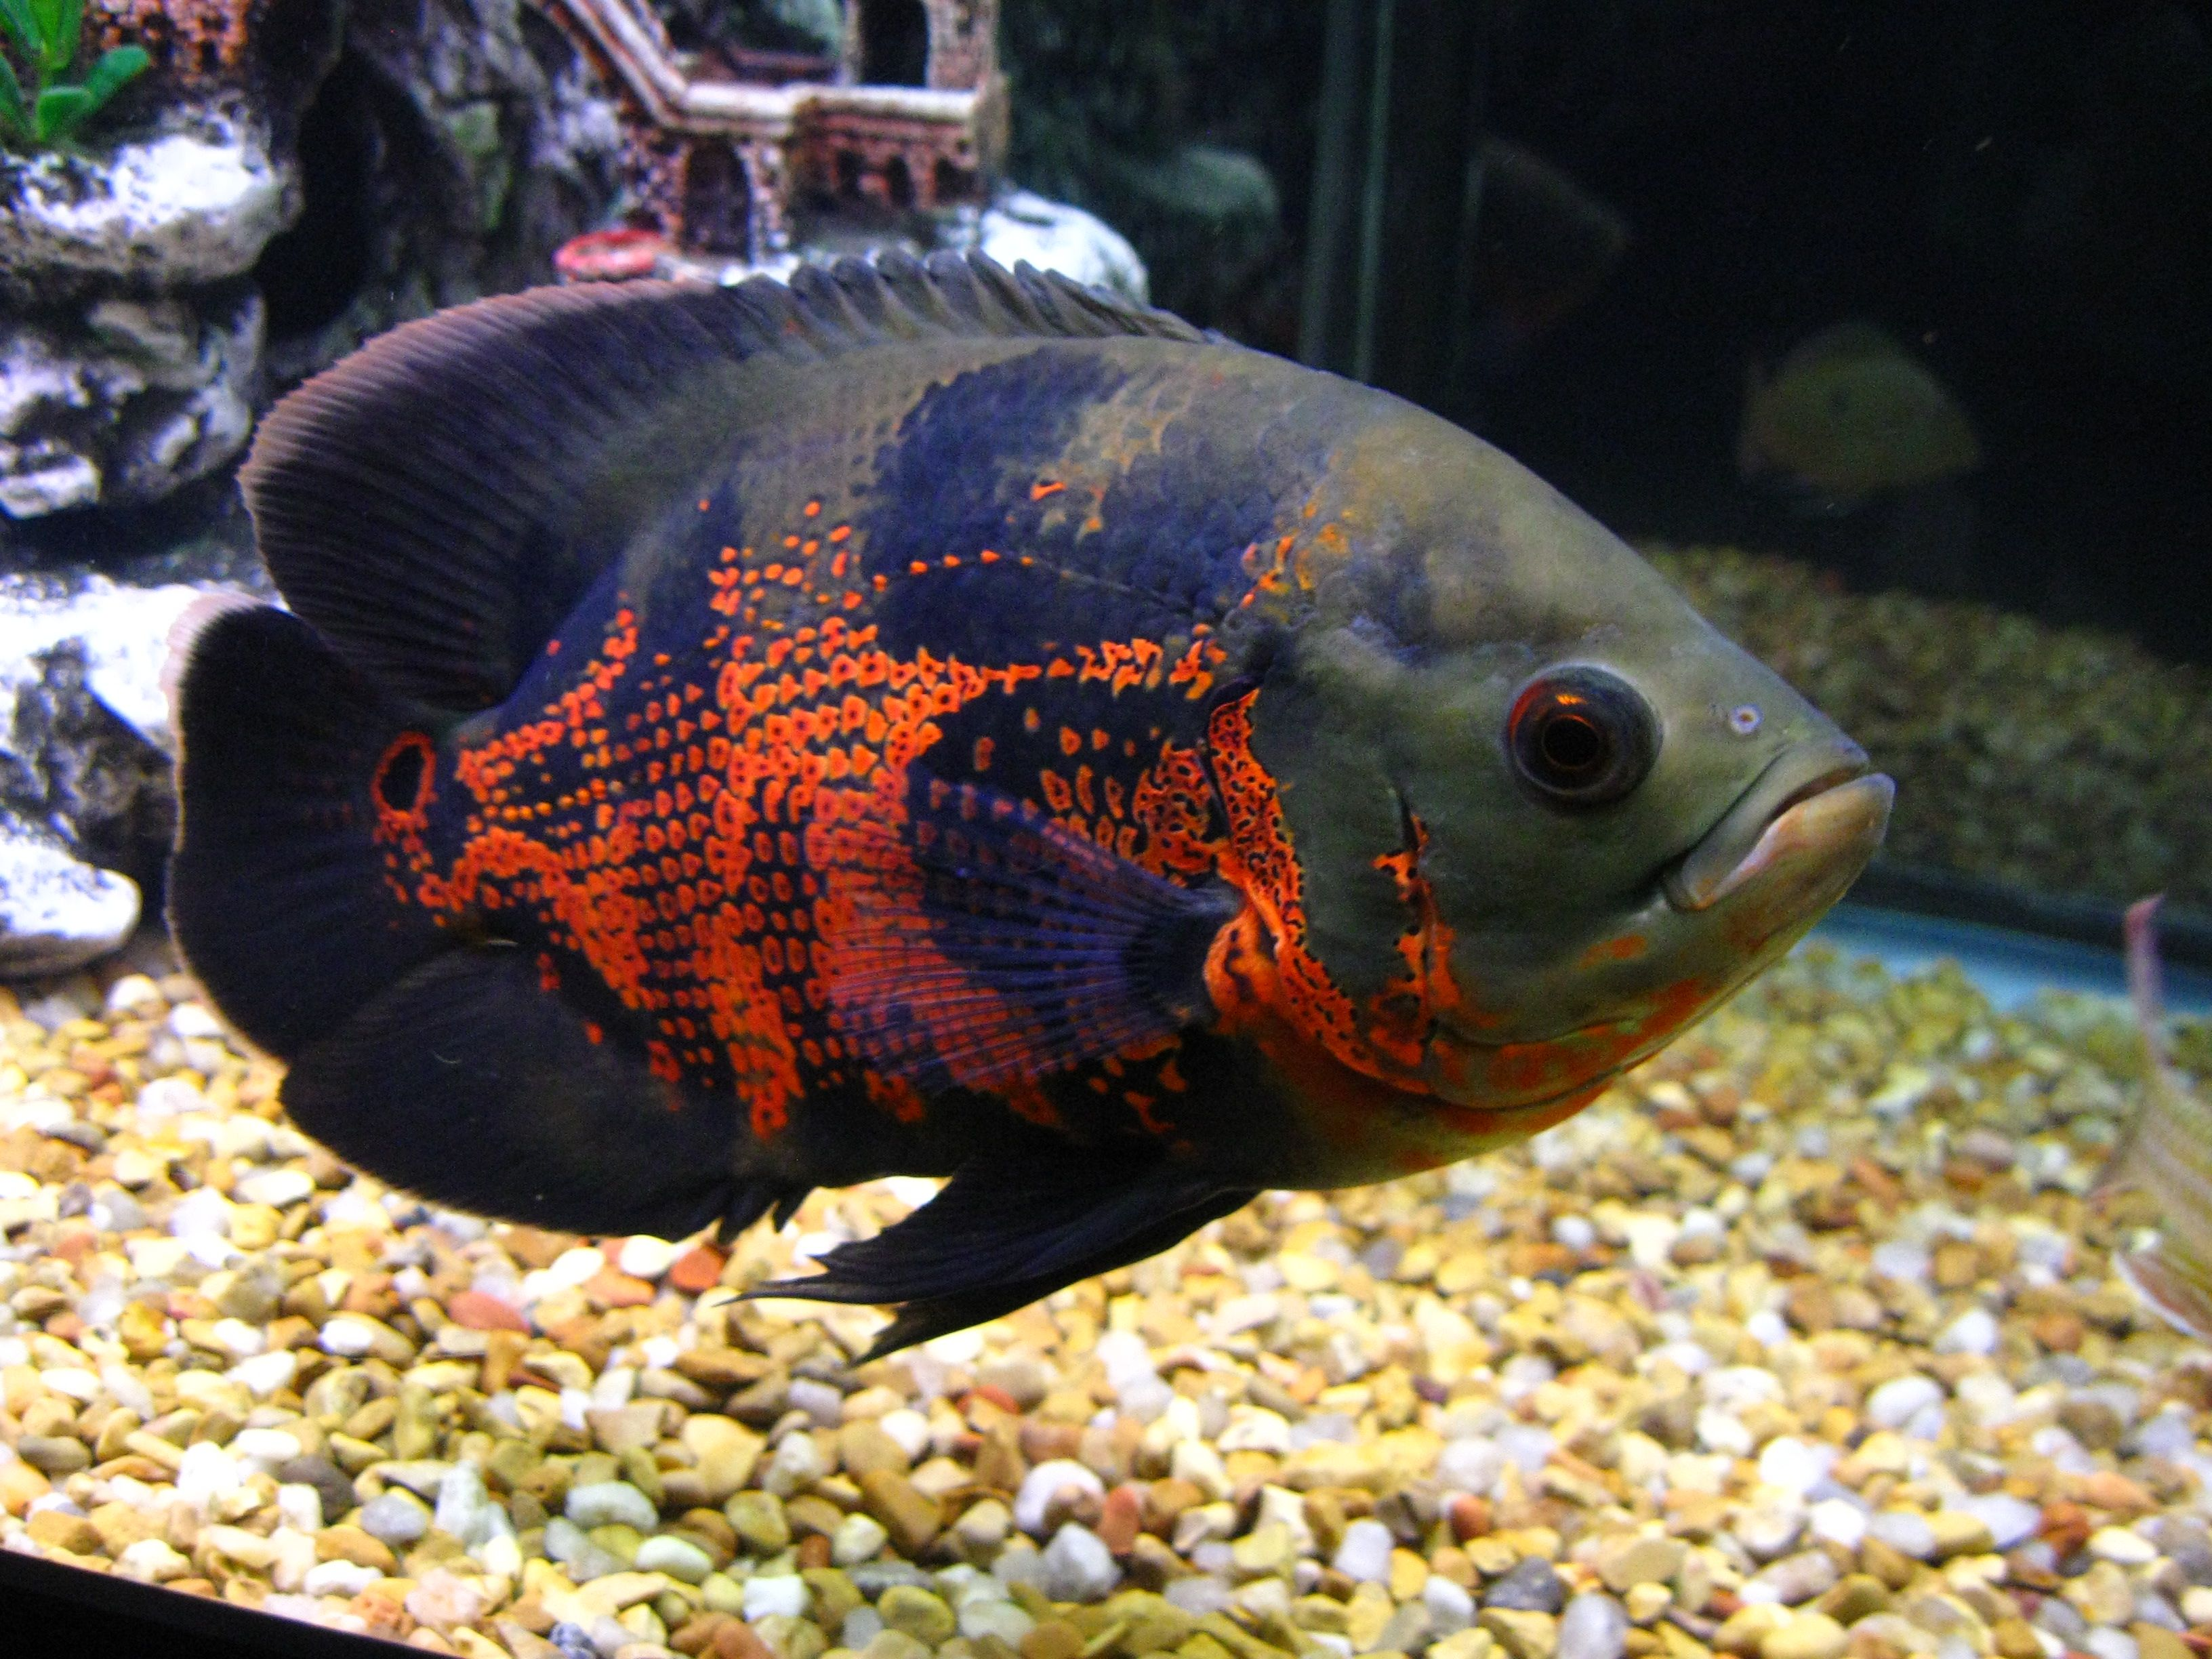 Freshwater aquarium fish by size - Pet Fish Stuff Tiger Oscar Cichlid He Looks Like The One I Had I Eventually Found Him A New Home As My 2 Parrot Fish Used To Bully Him